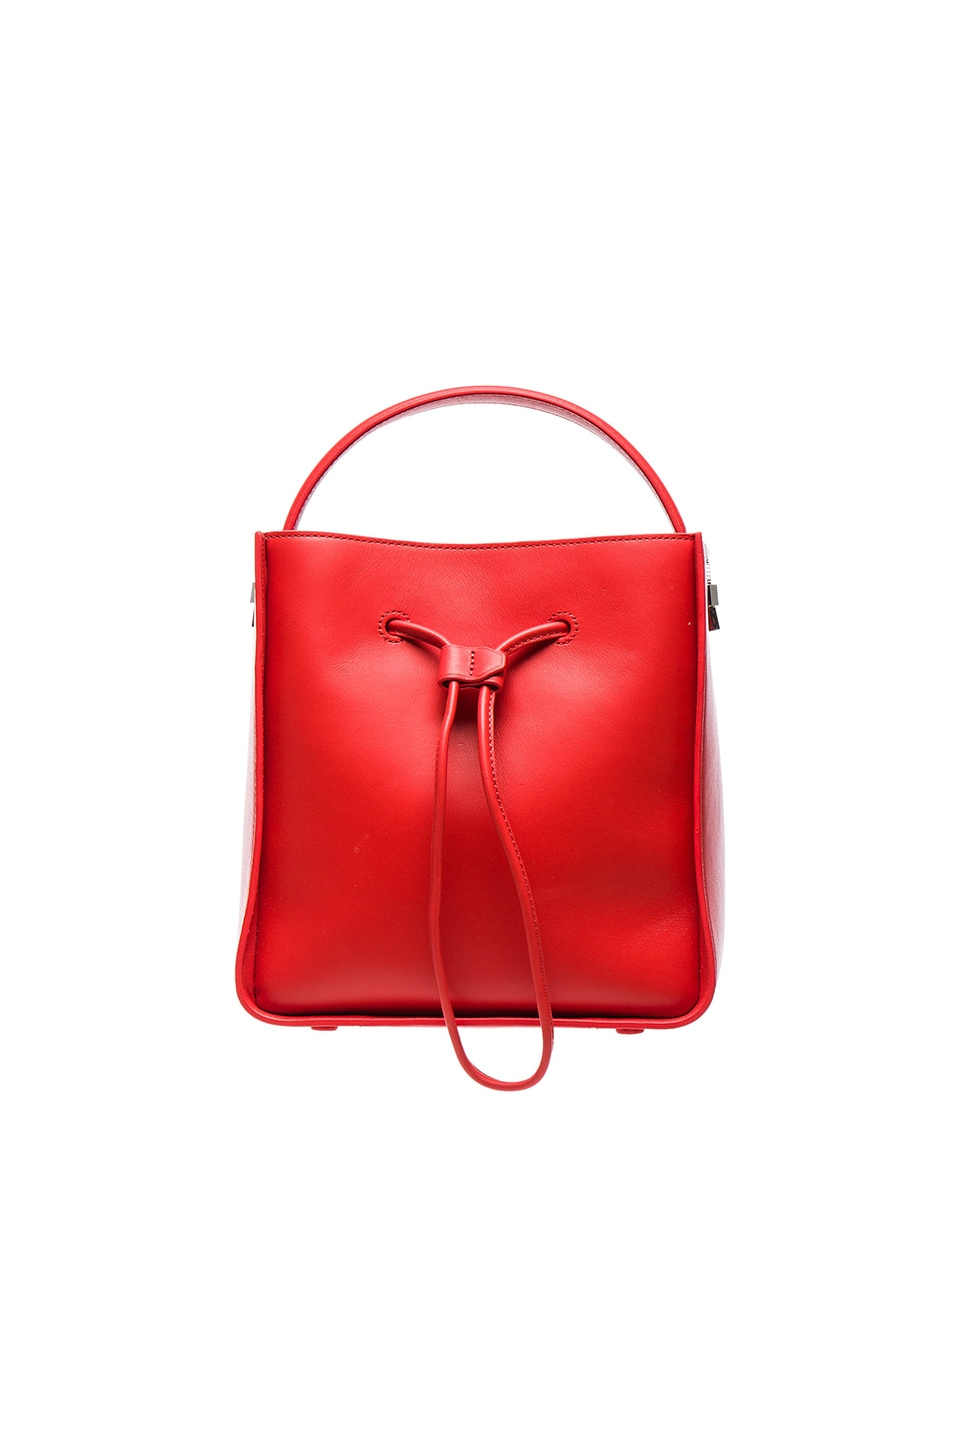 Image 1 of 3.1 phillip lim Small Soleil Bucket Bag in Cherry